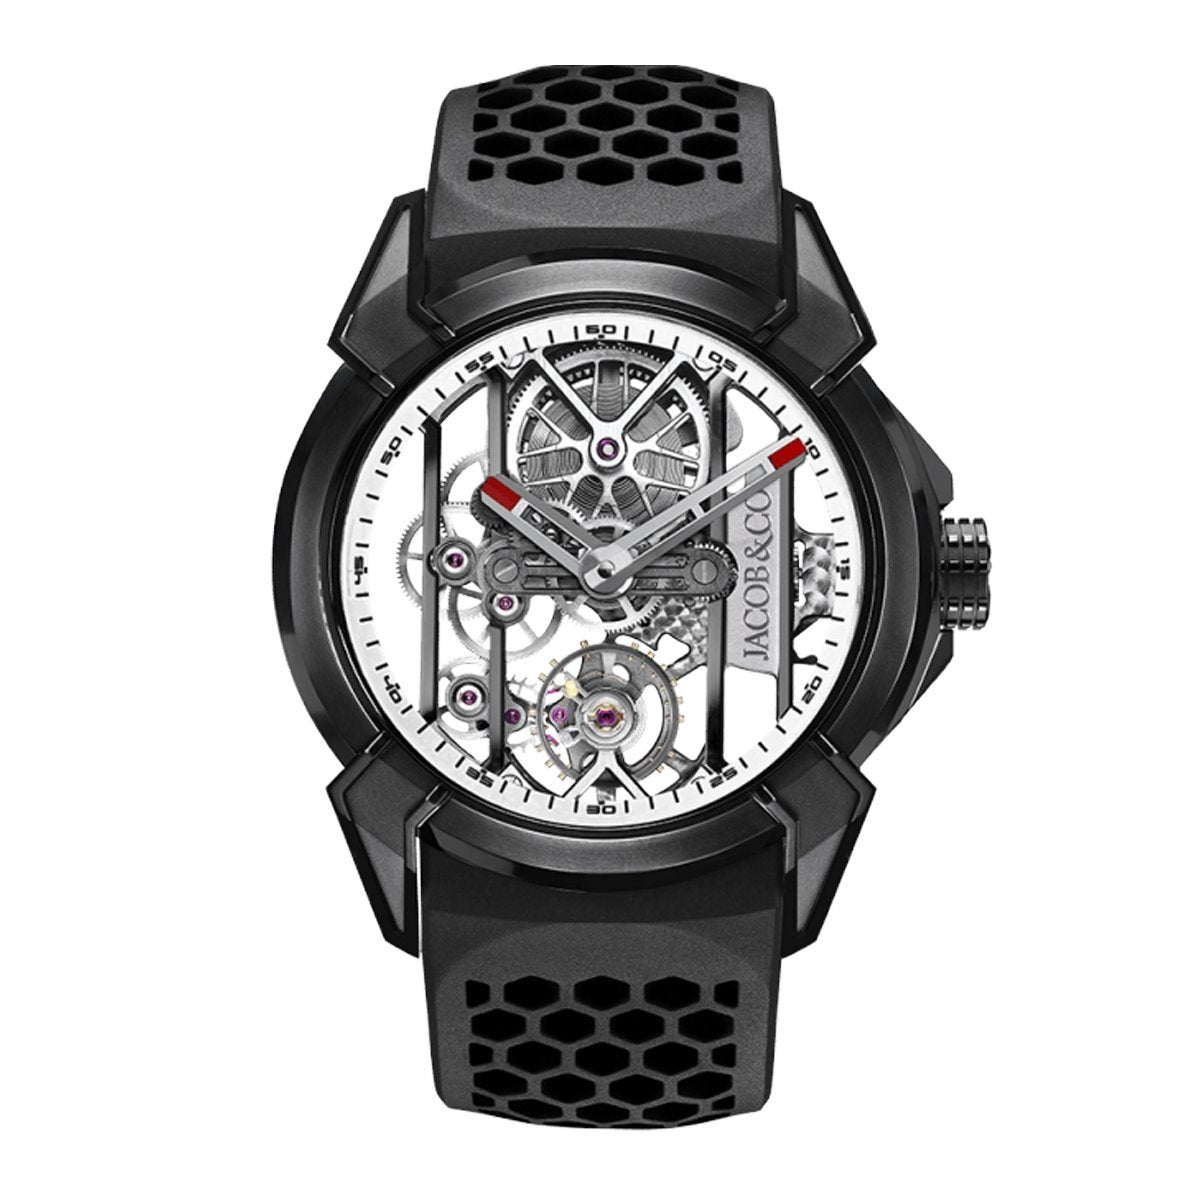 Jacob & Co. Epic X Skeleton Black DLC Titanium White - Watches & Crystals